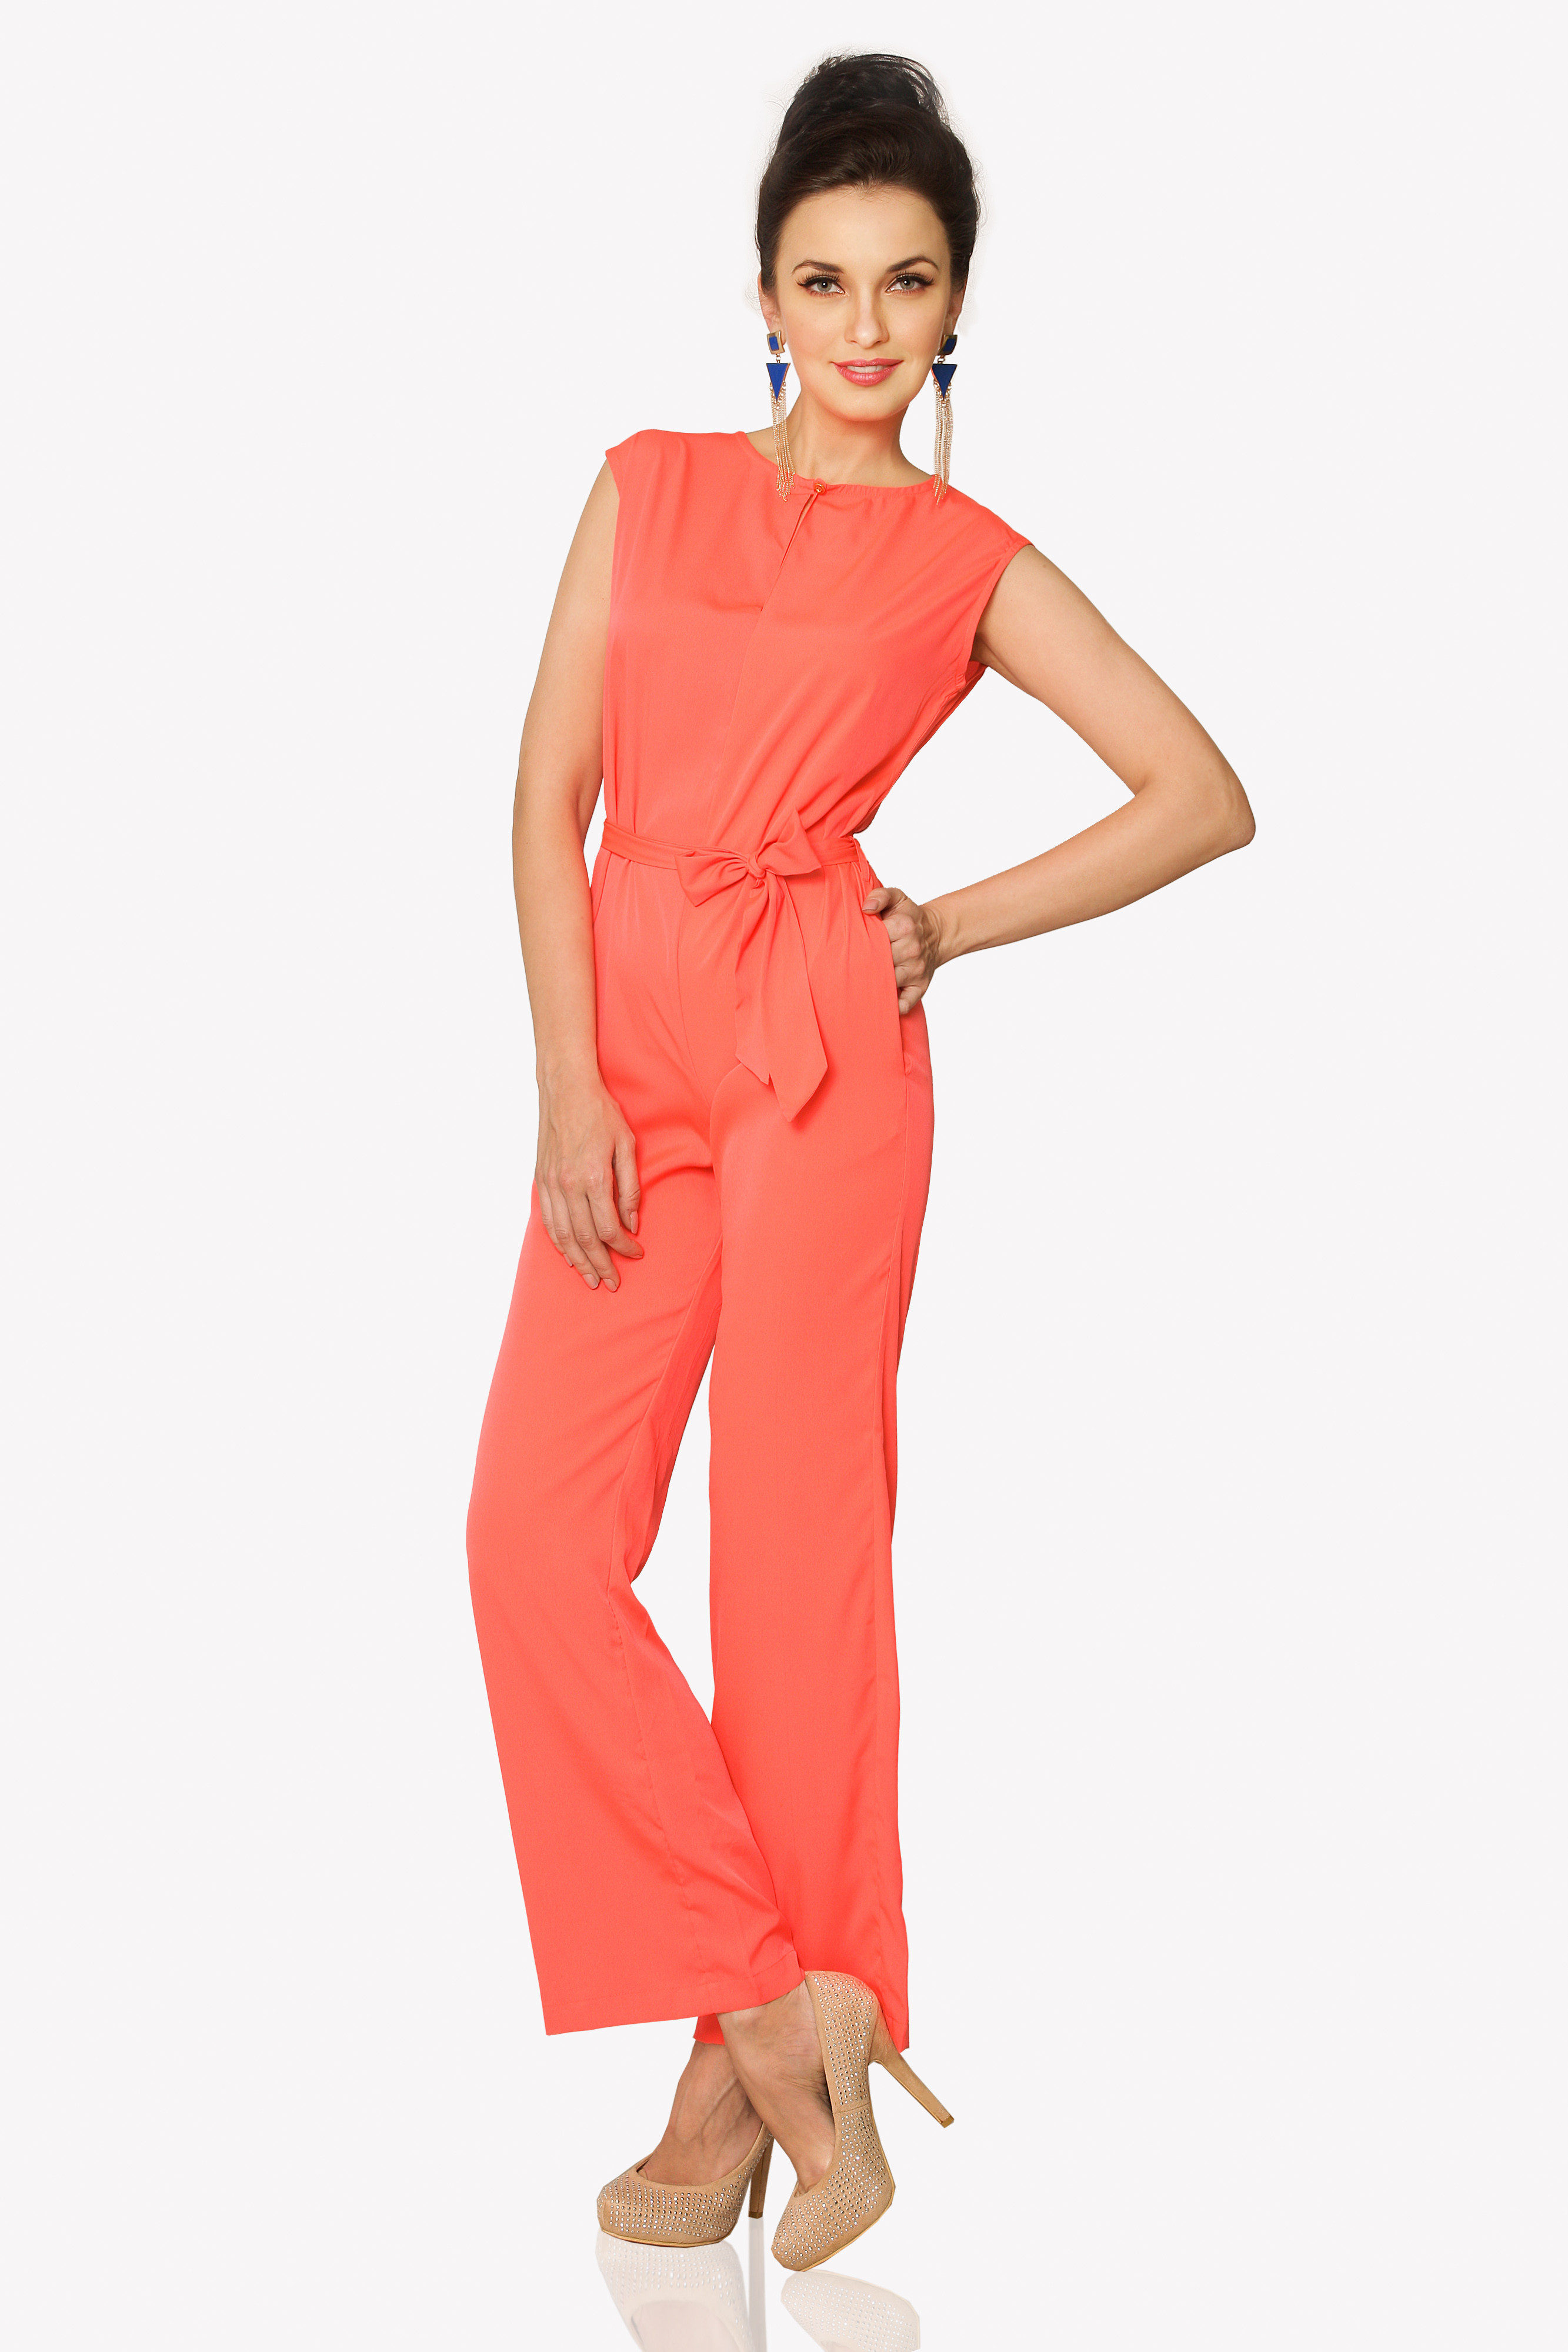 Excellent  Solid Women39s Jumpsuit Online Shopping India  Flipkart  Sweet Couch